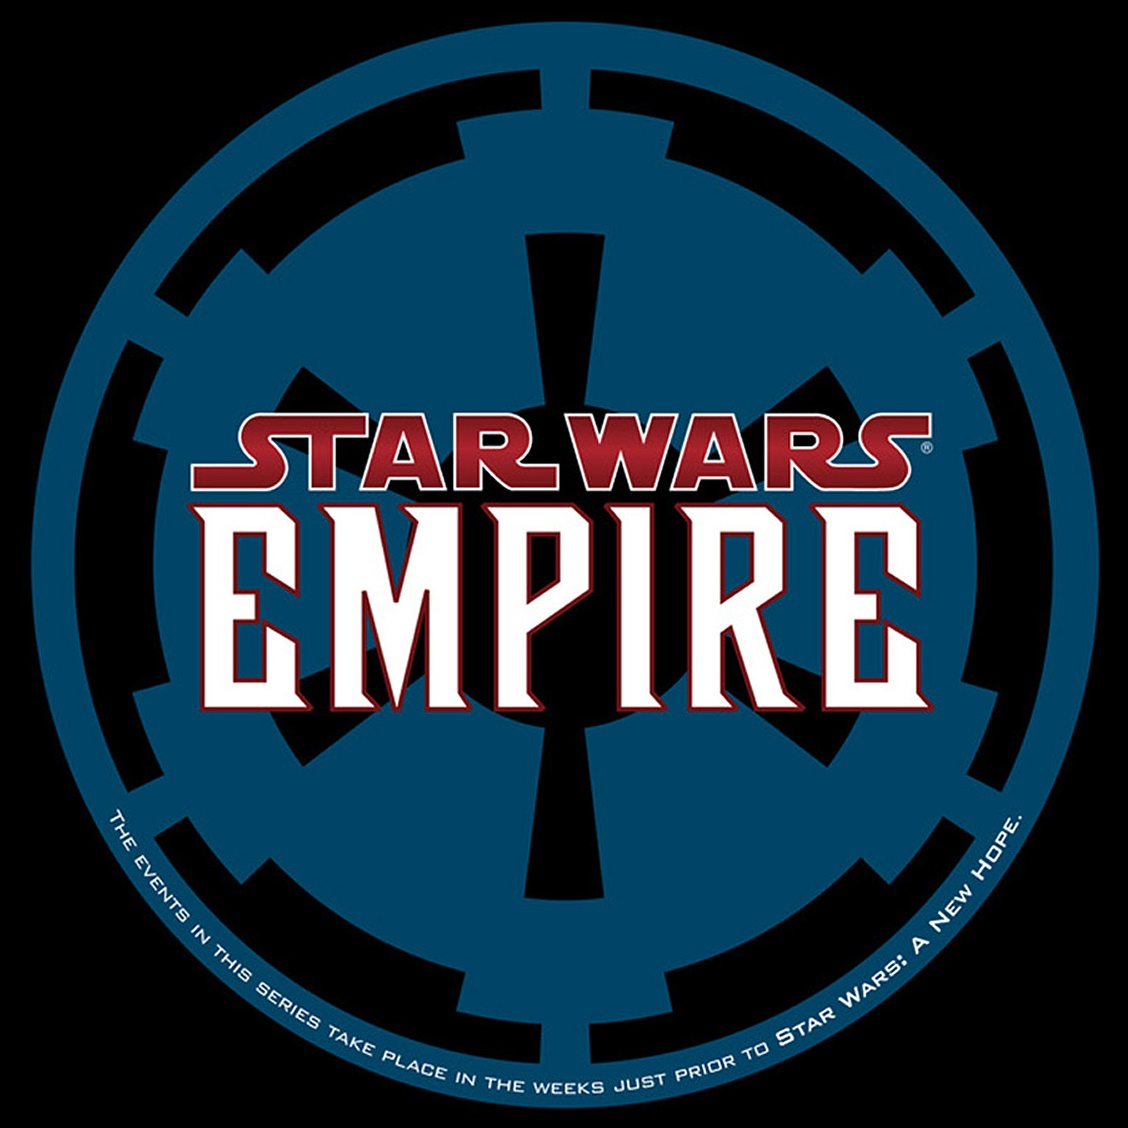 Star Wars Empire Wallpapers Comics Hq Star Wars Empire